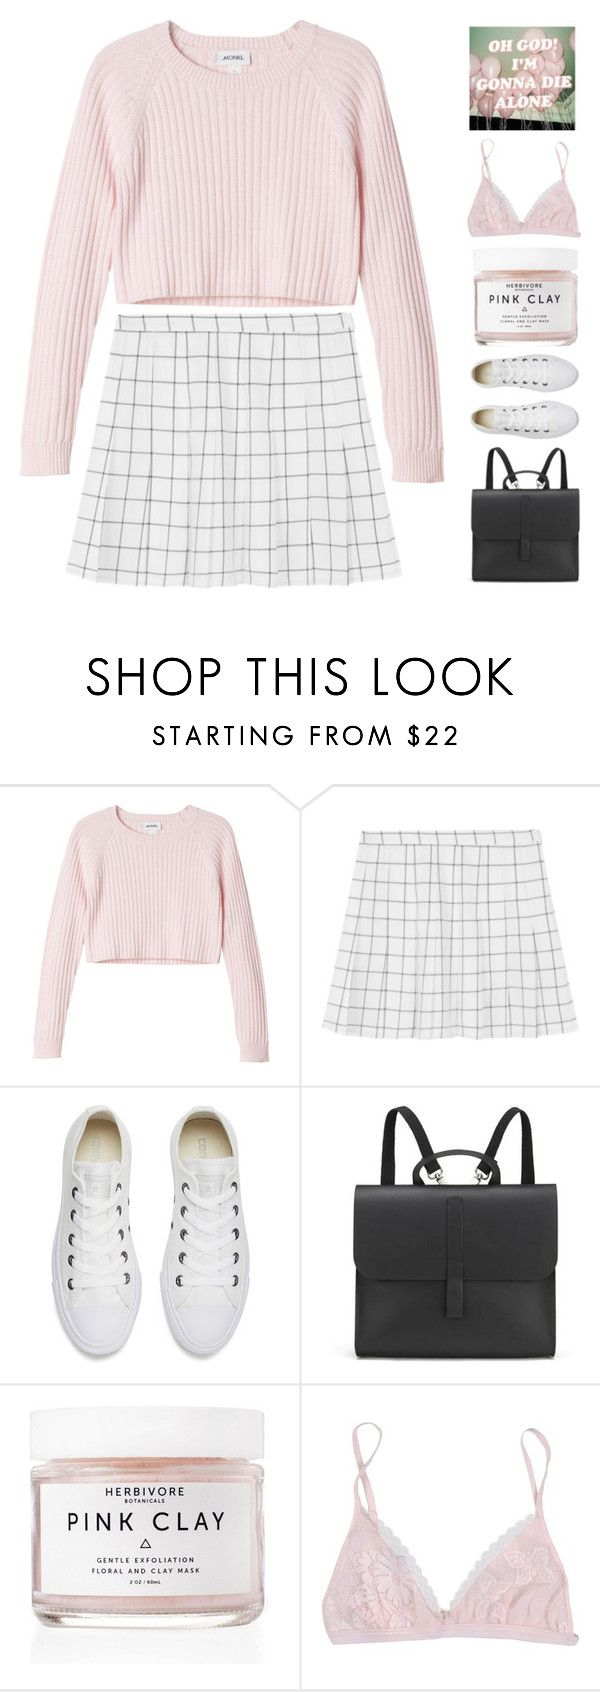 """""""77."""" by alisse-k ❤ liked on Polyvore featuring Monki, Converse, Danielle Foster, Herbivore and La Perla"""